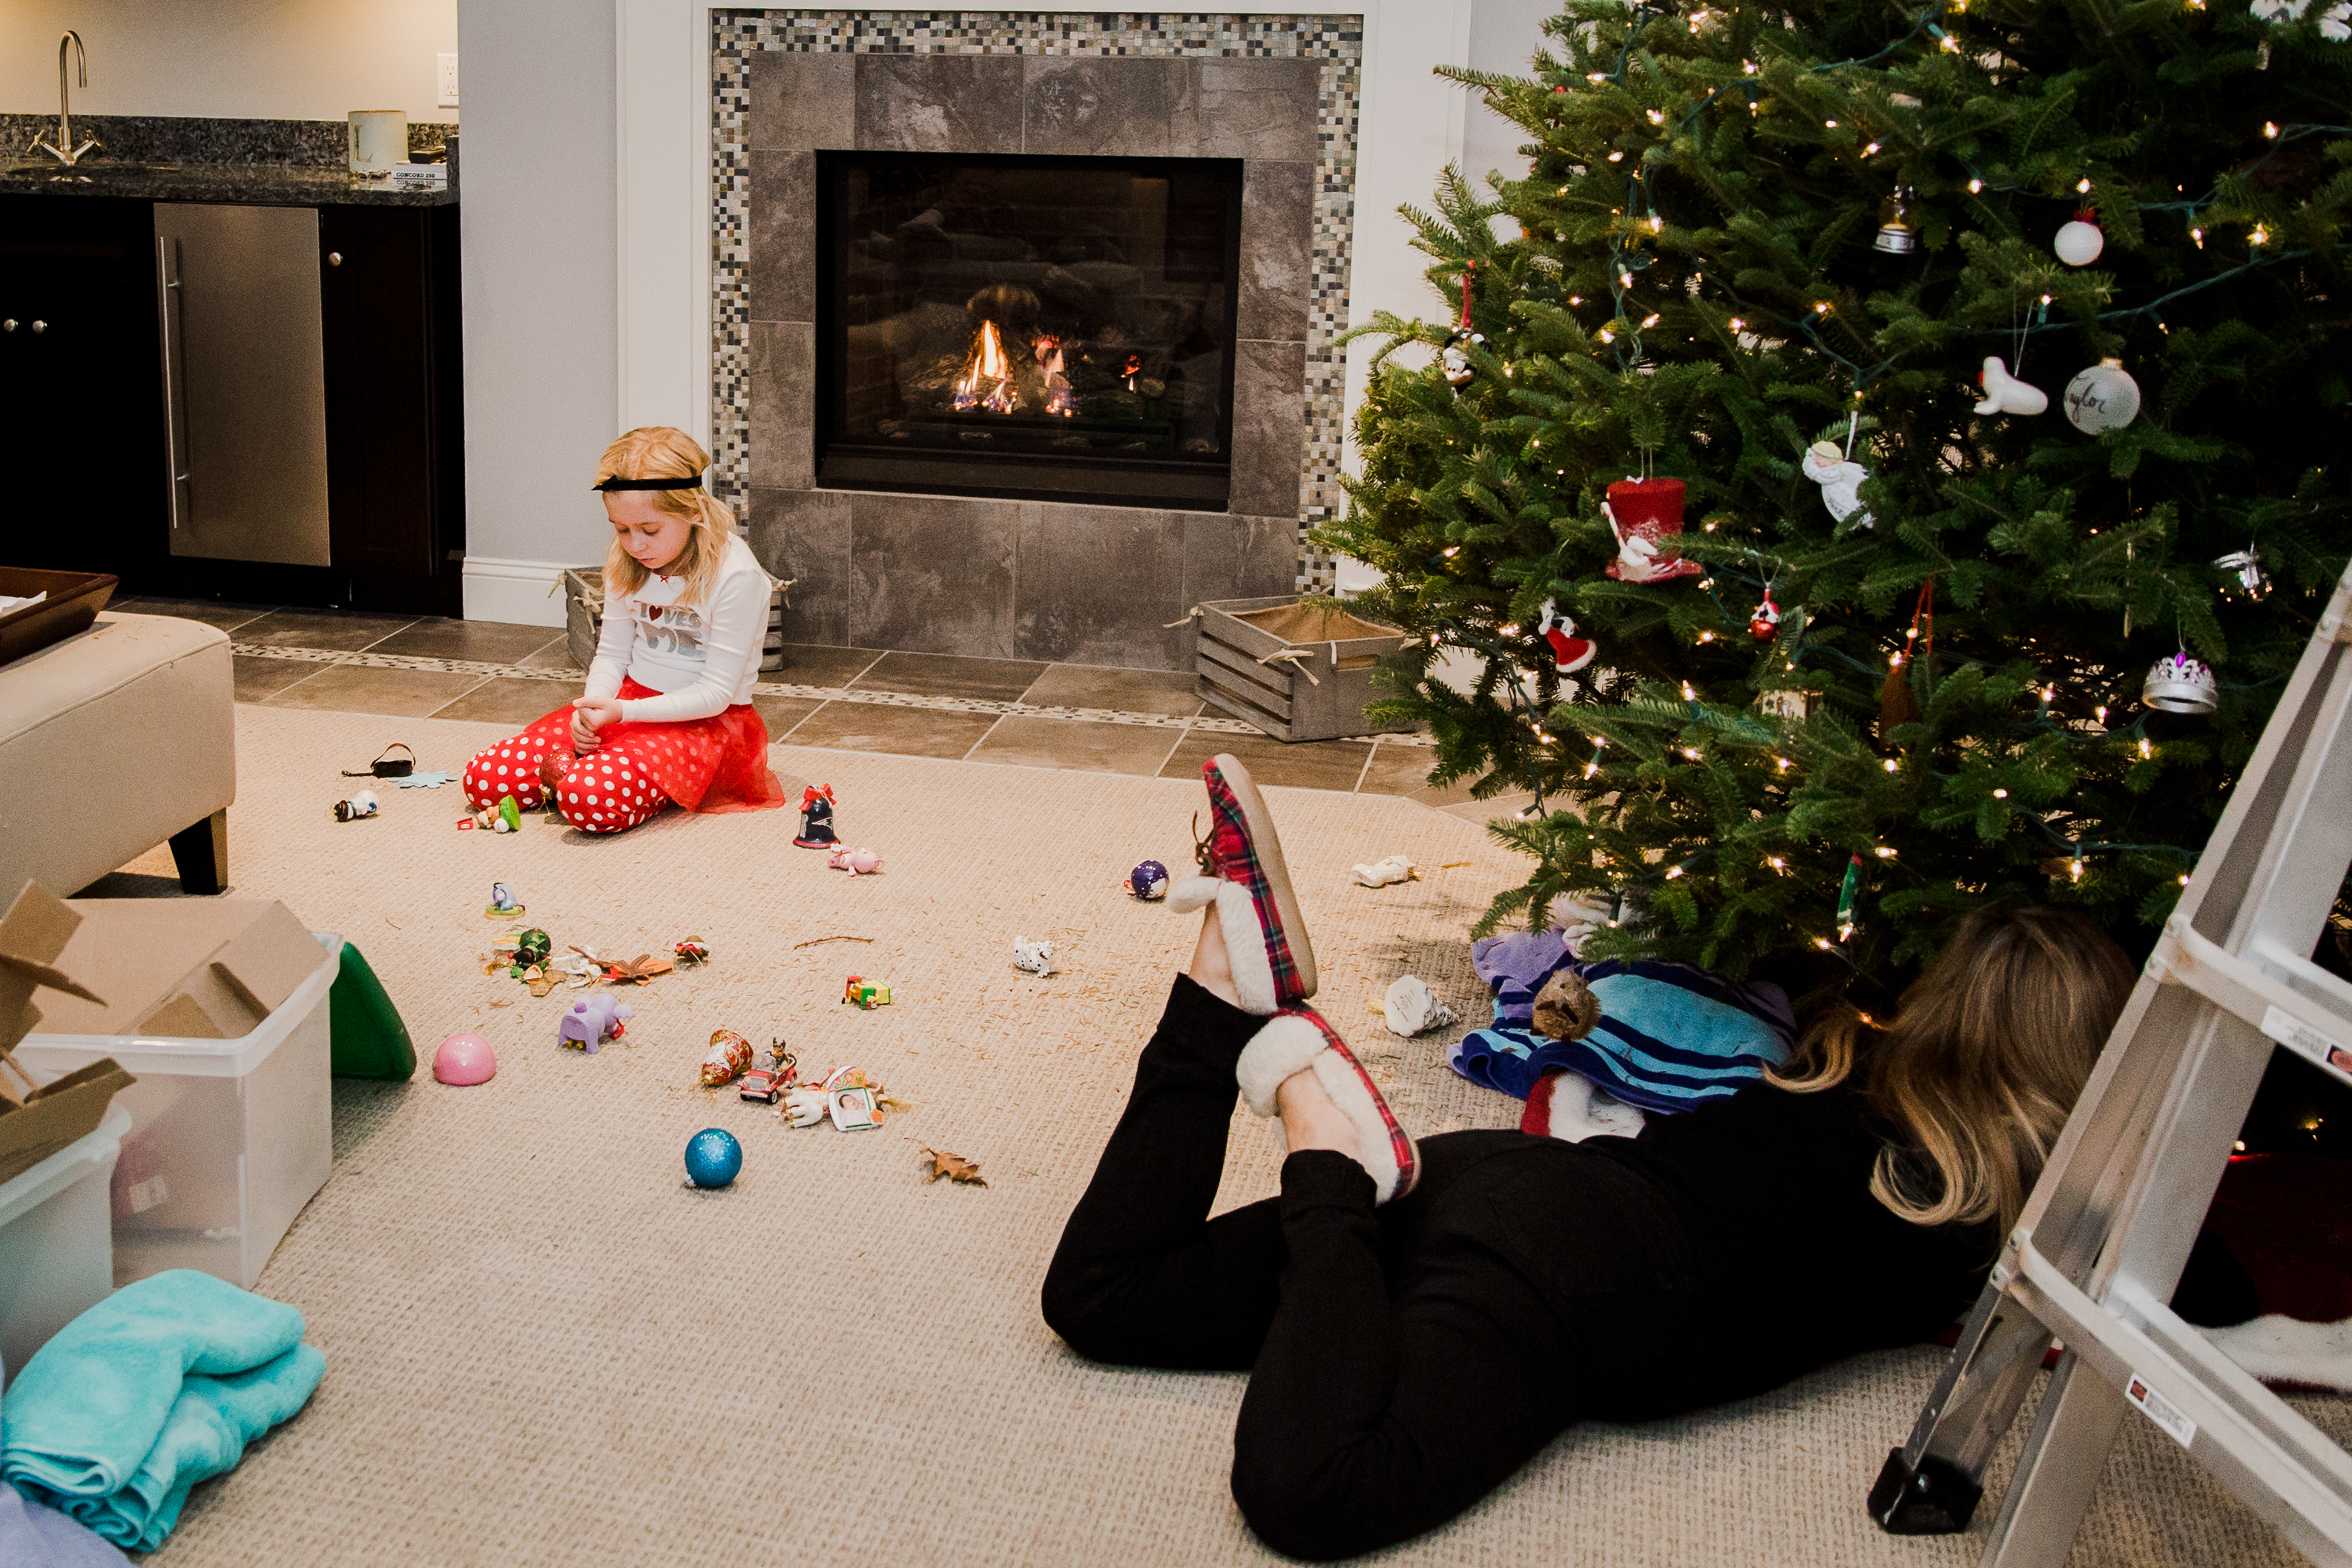 mom laying under tree with little girl and broken ornaments in background